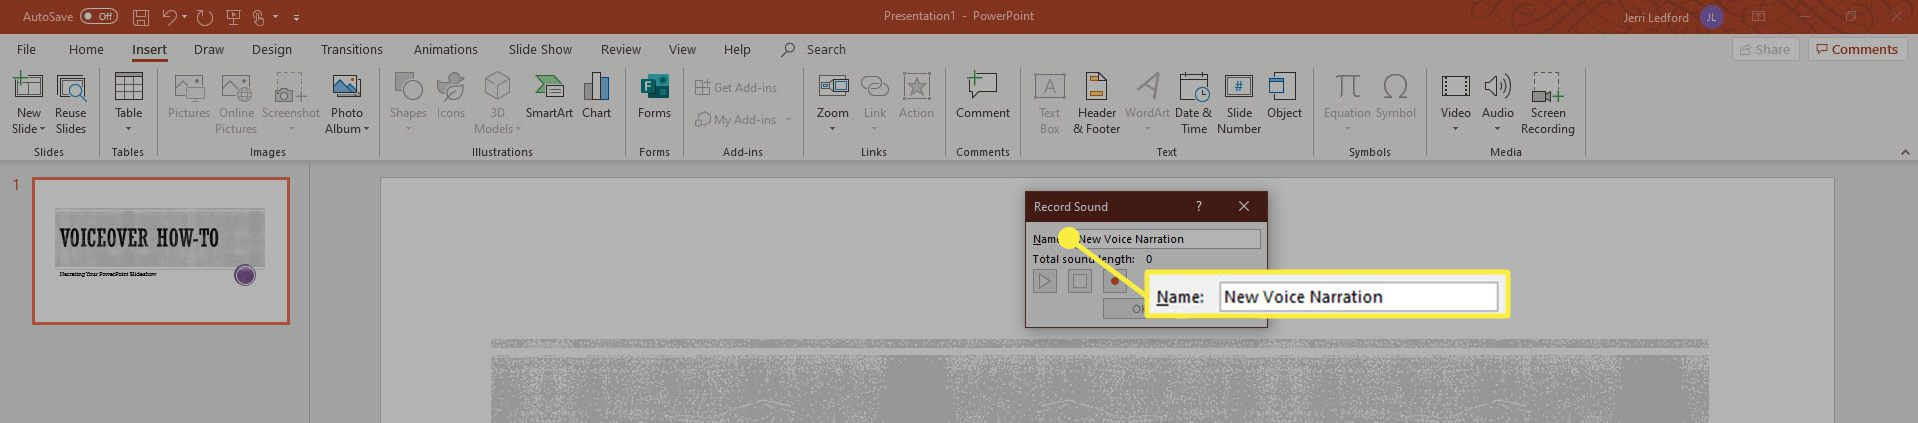 A screenshot showing the Record Sound controls in PowerPoint